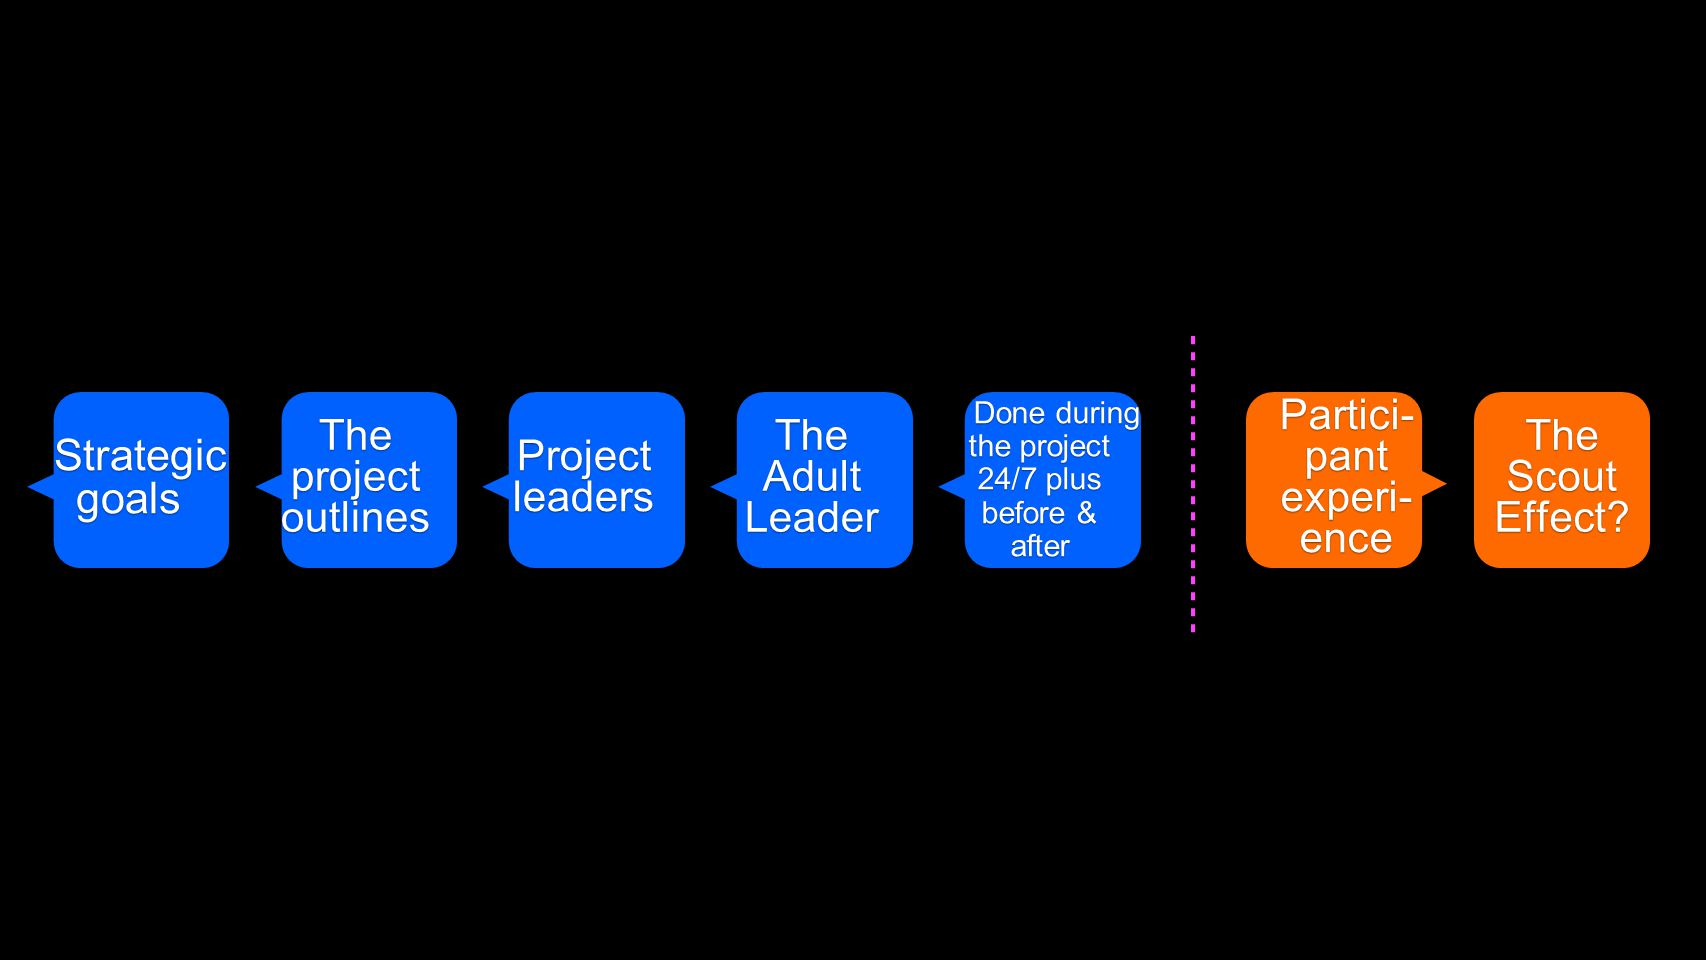 The Adult Leader Projectleaders The project outlines Strategic goals Strategic goals Partici- pant experi- ence Done during the project 24/7 plus before & Done during the project 24/7 plus before &after The Scout Effect